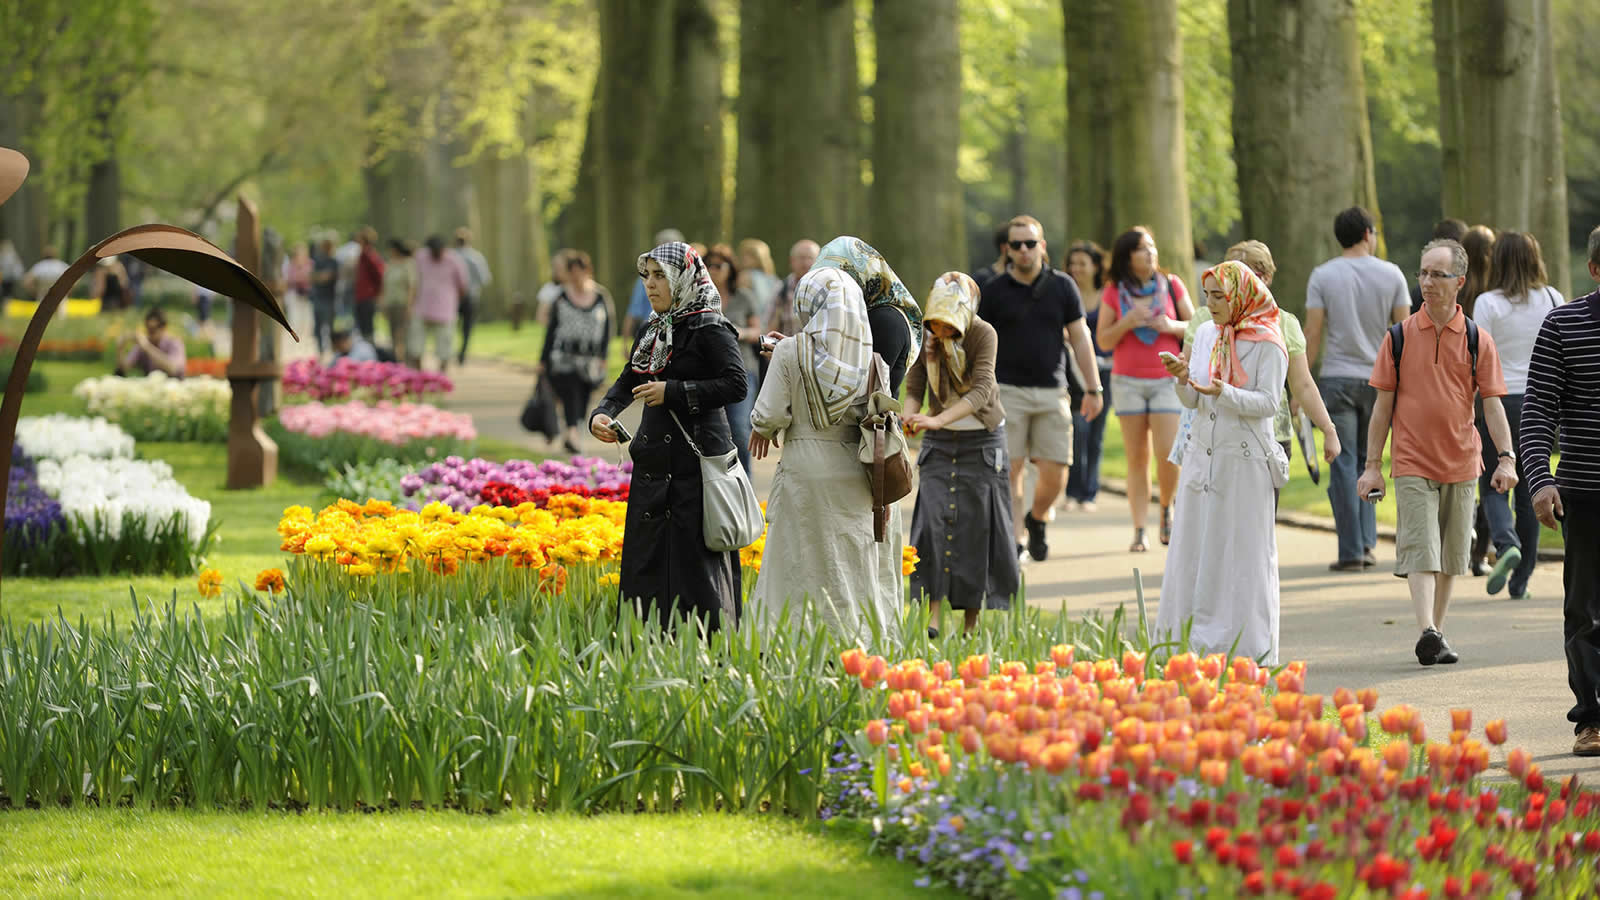 A group of Muslim women in headscarves view tulips at Keukenhof Gardens in the Netherlands